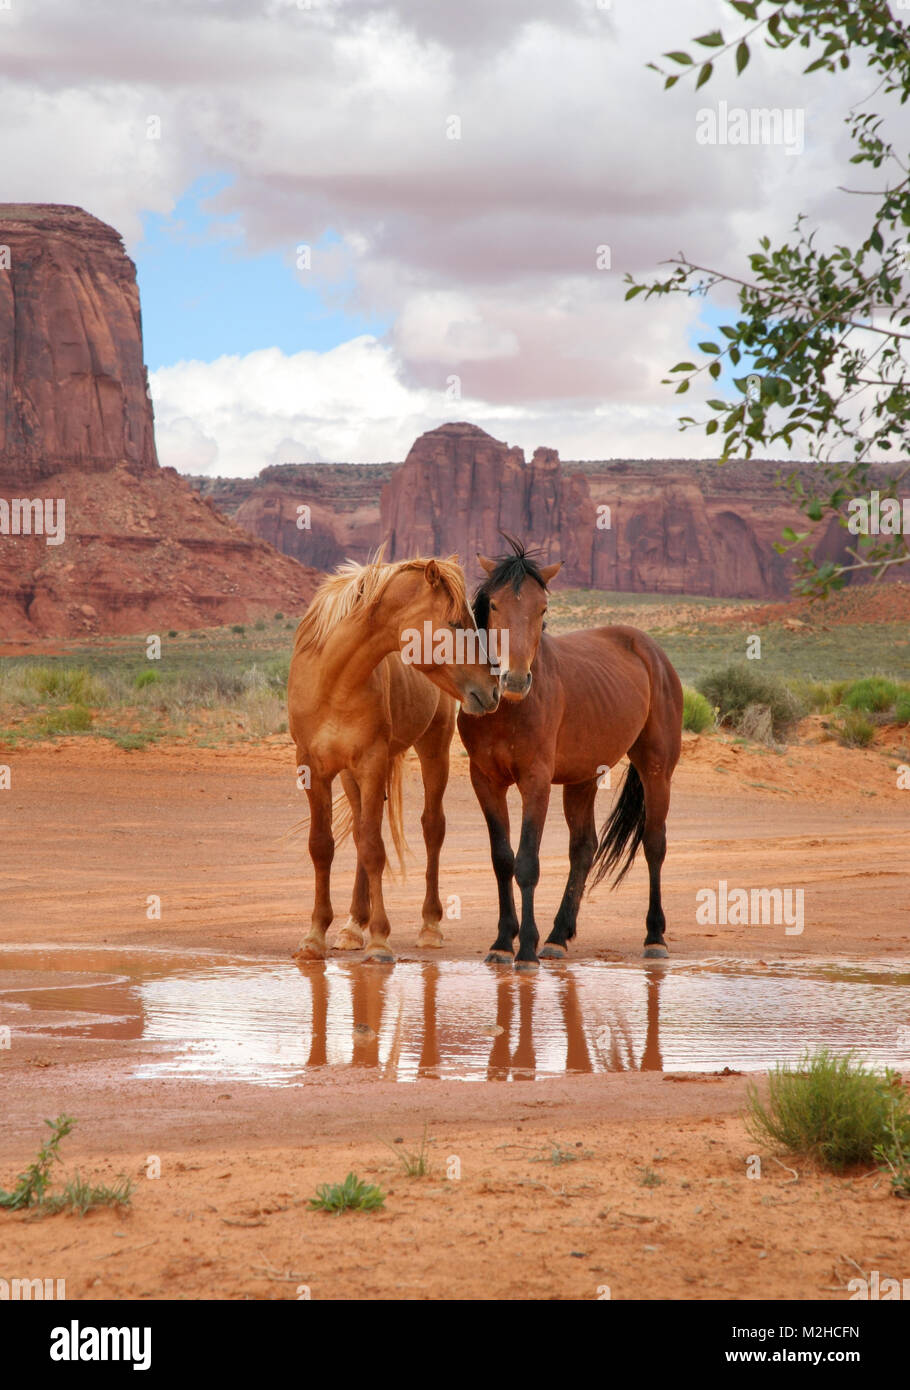 two wild horses together at a water hole with heads close showing affection Stock Photo